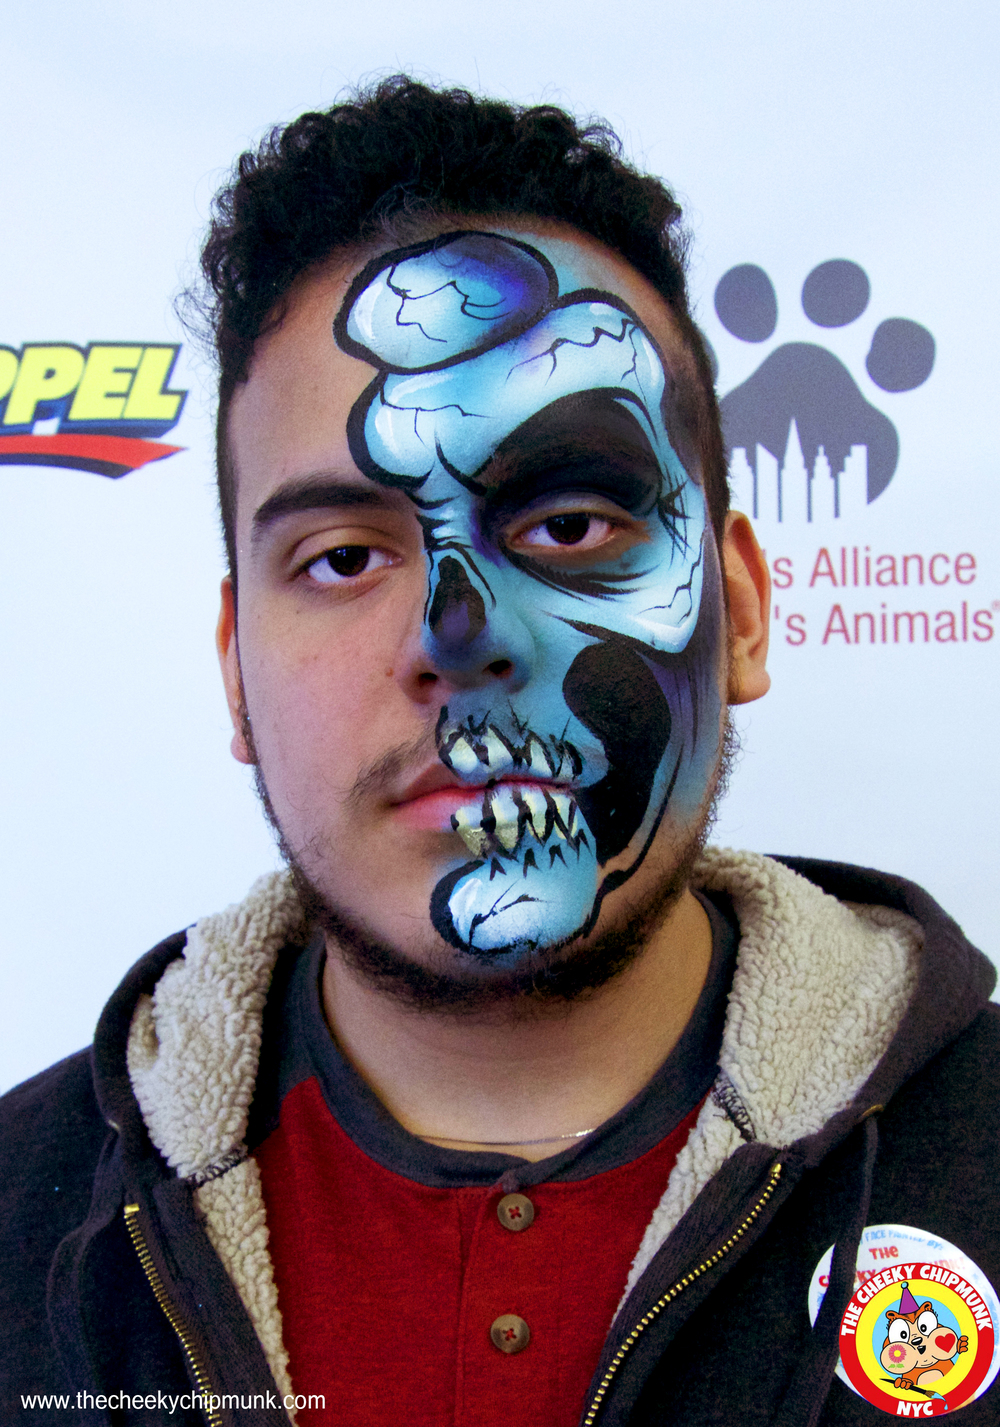 adoptapalooza may 22 2016 adult ronnie mena half skull man.jpg